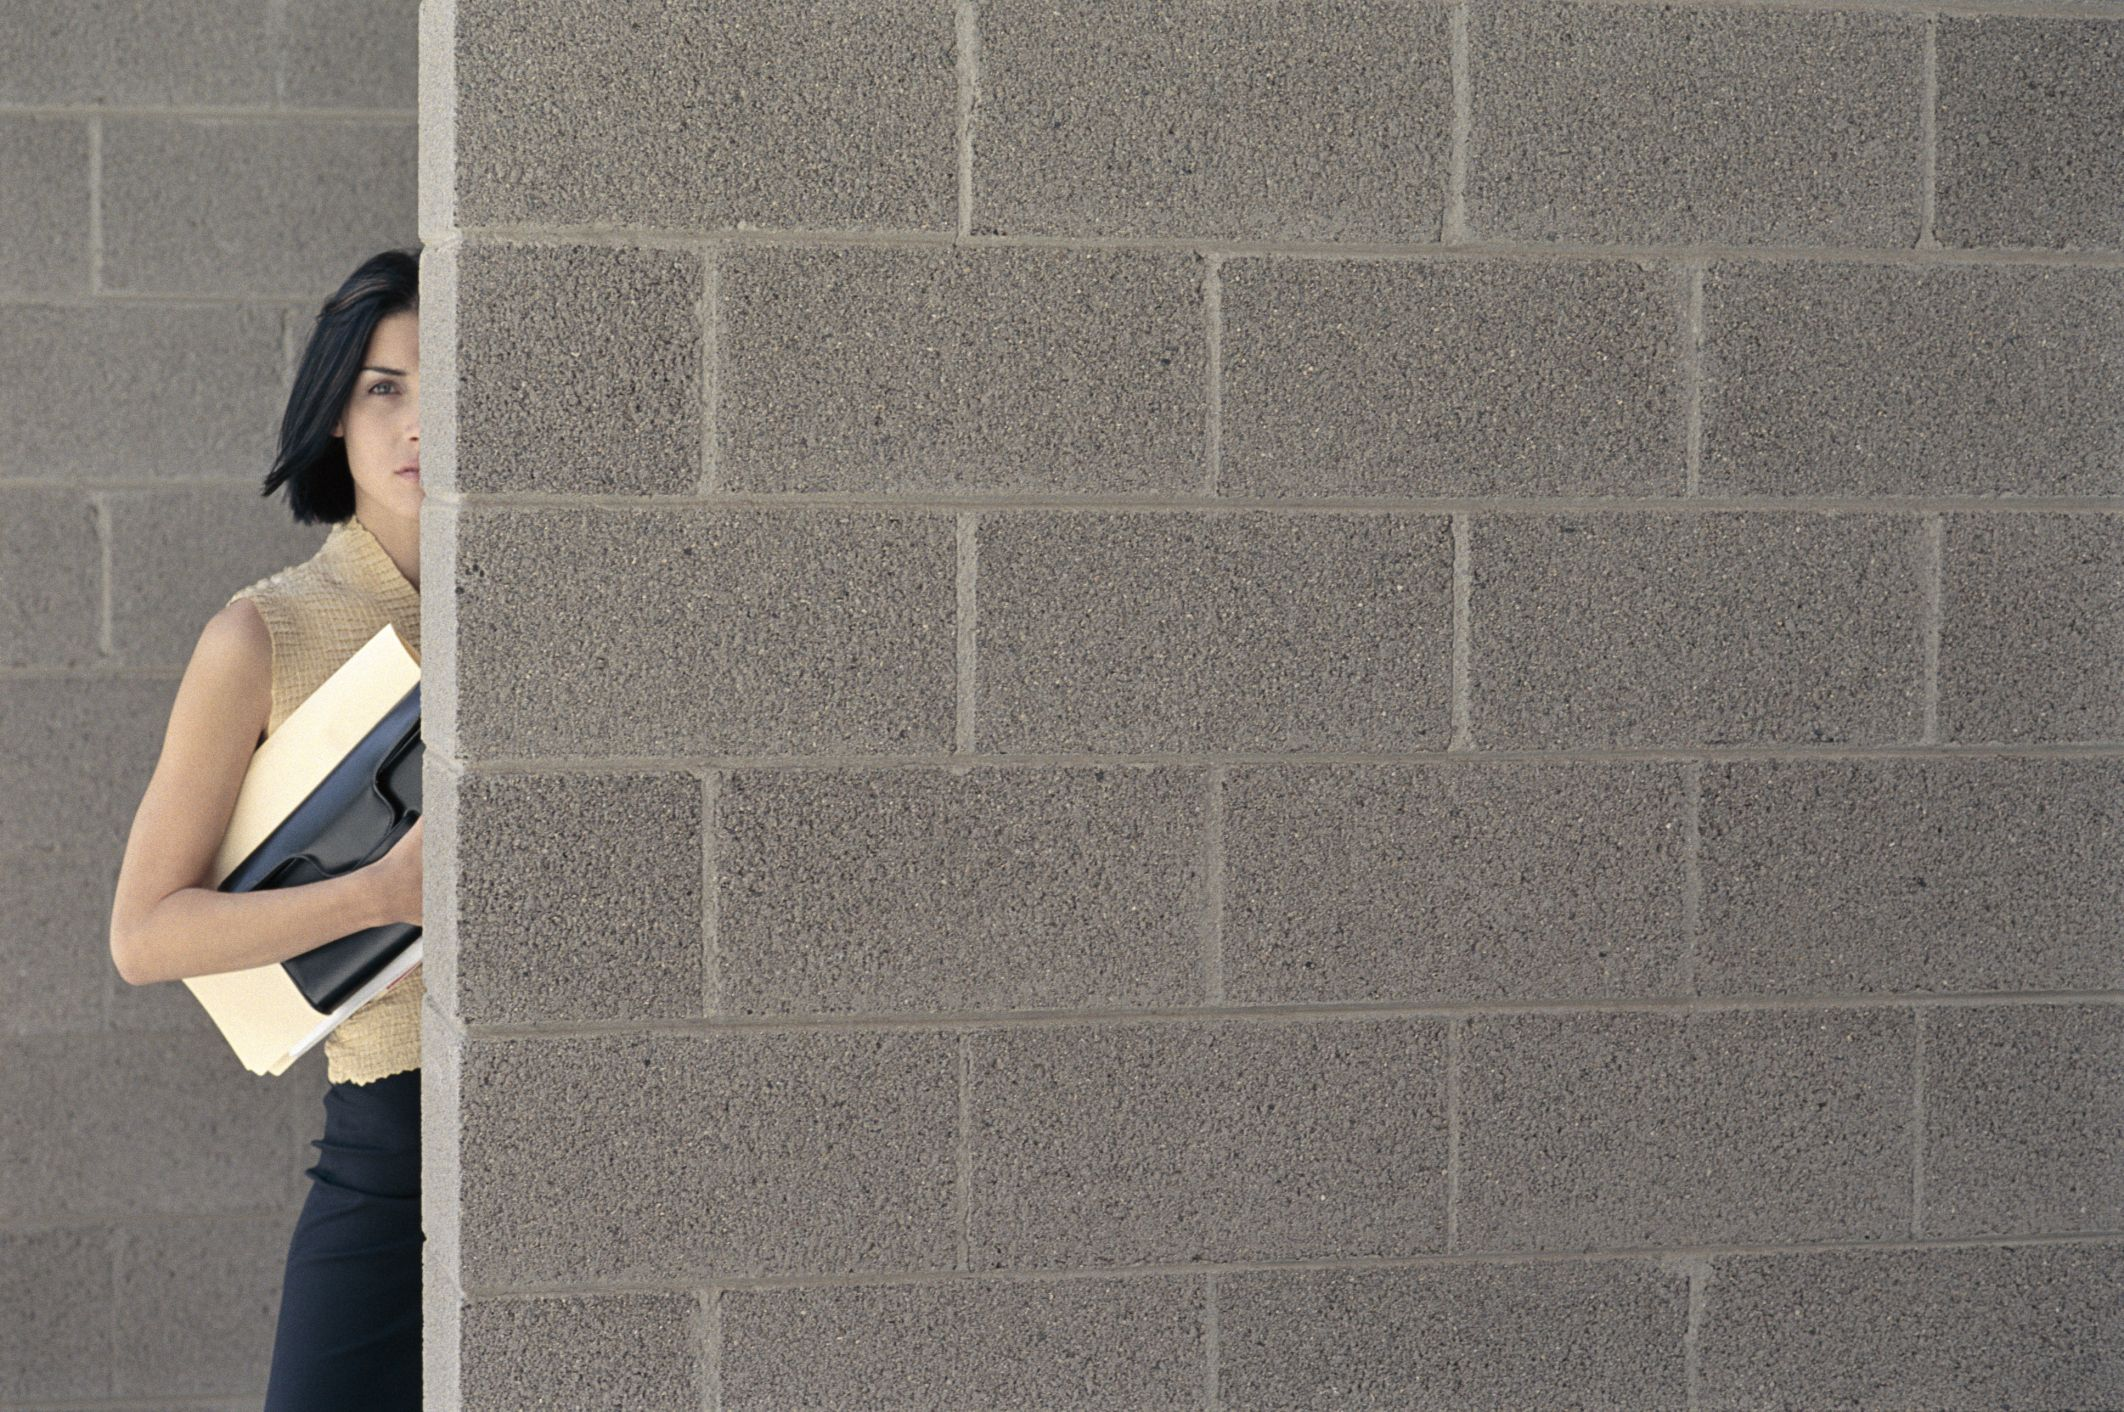 How To Glue Drywall To The Interior Of Concrete Block Walls Hunker Concrete Block Walls Cinder Block Walls Concrete Blocks